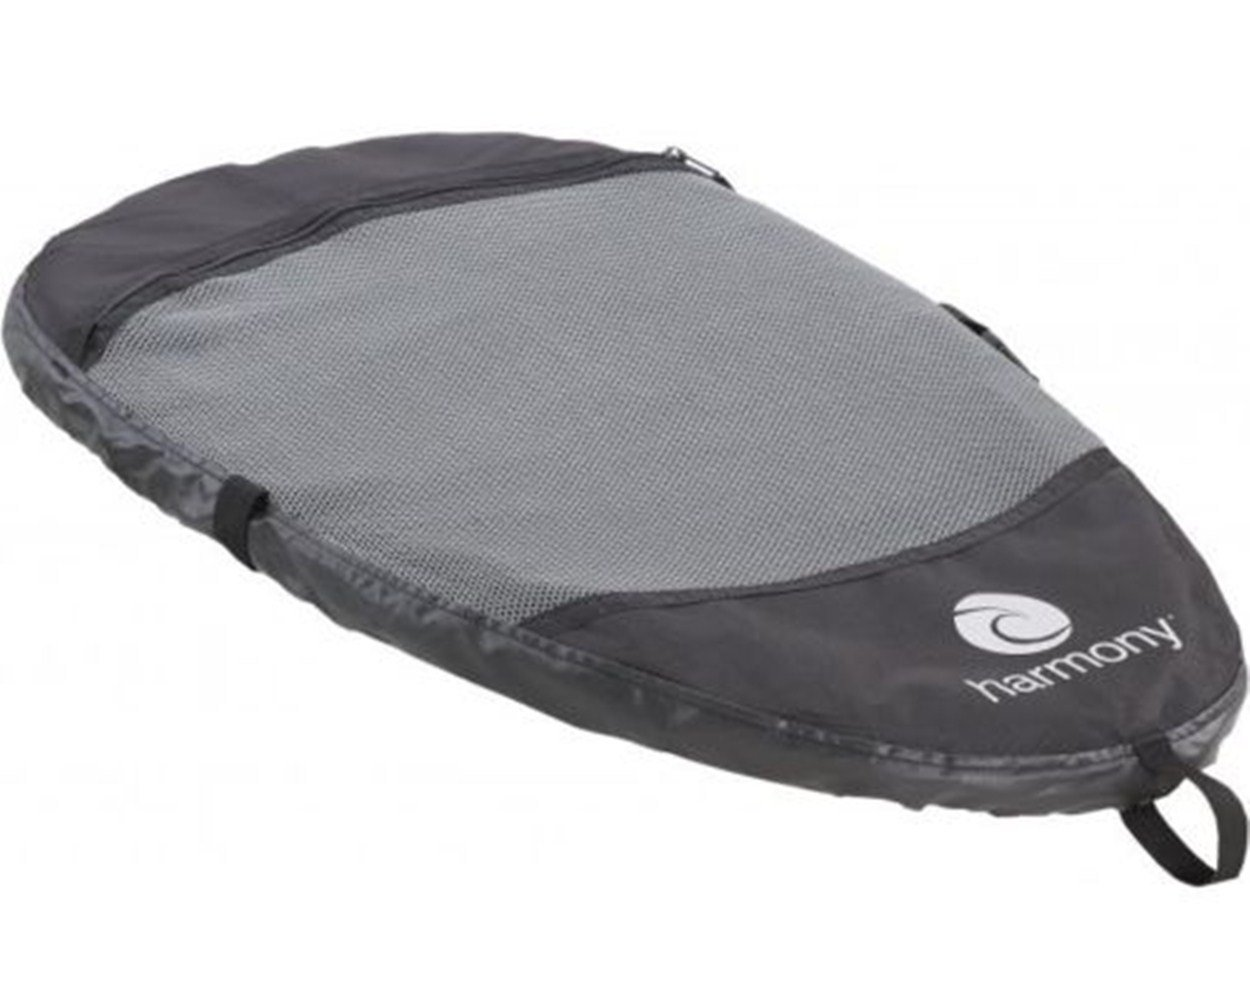 Harmony Kayak Accessories Cockpit Cover Clearwater Large Kayak Portage Storage Perception L